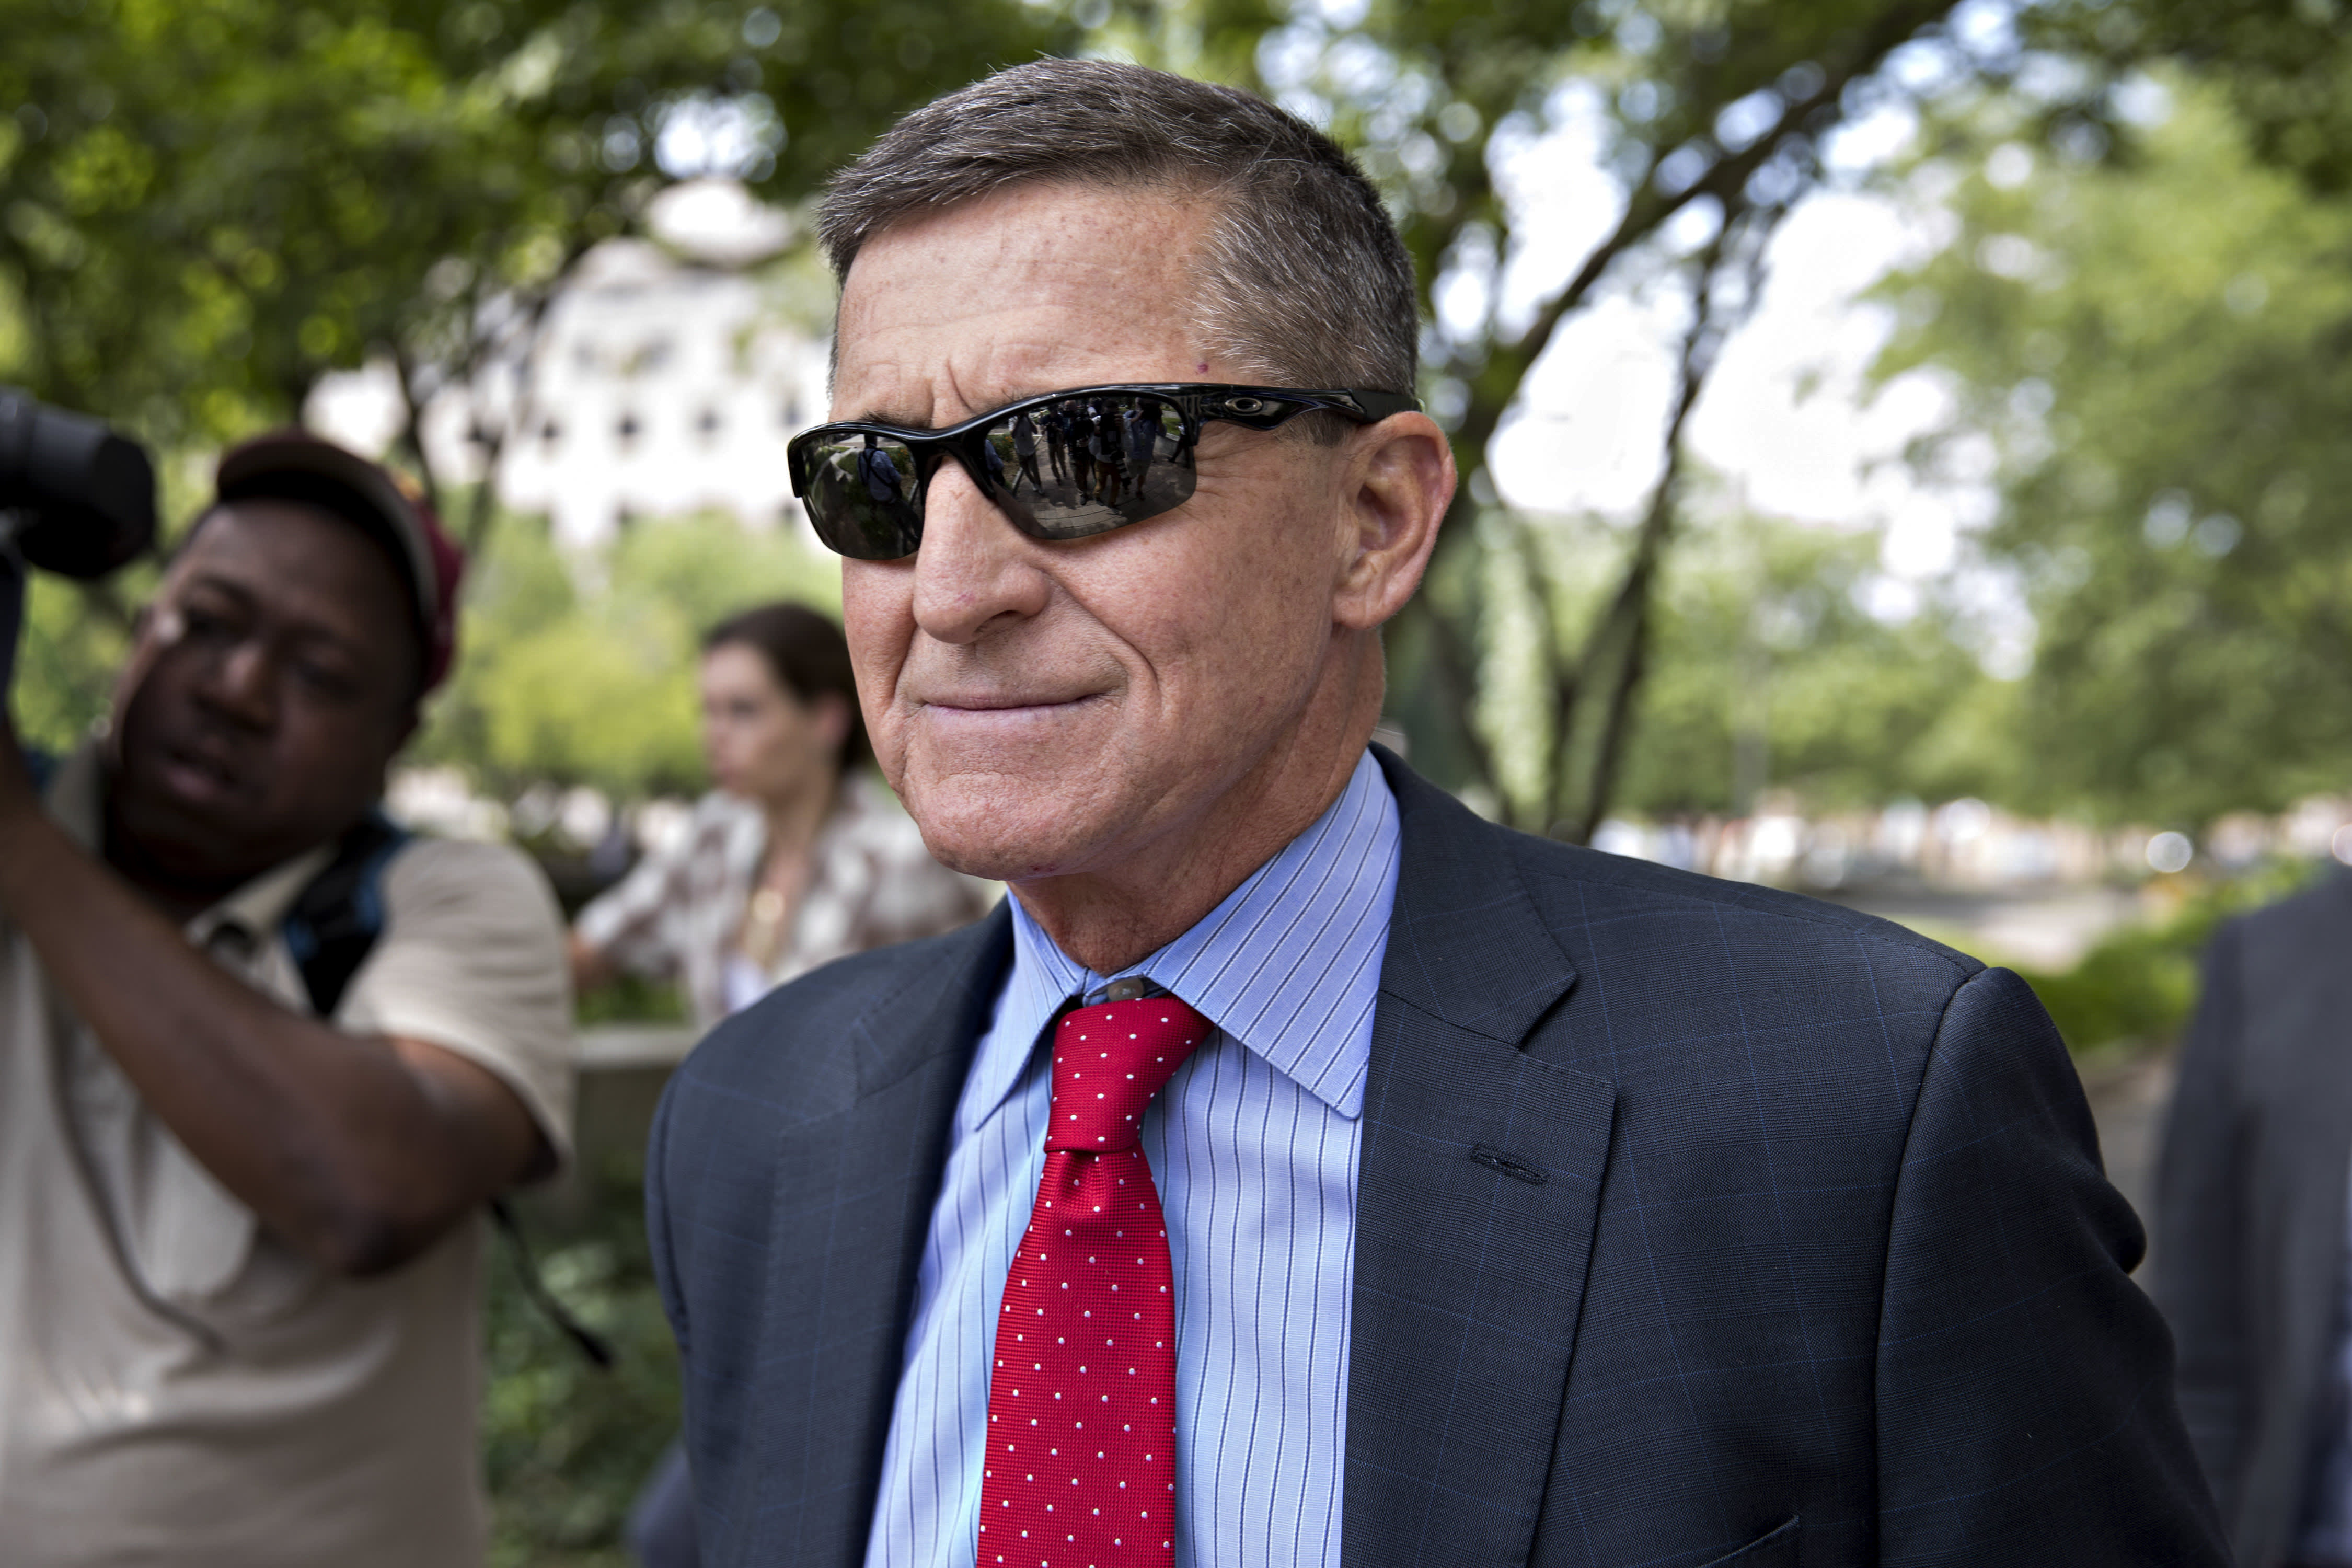 Attorney General Barr orders review of criminal case against former Trump aide Michael Flynn